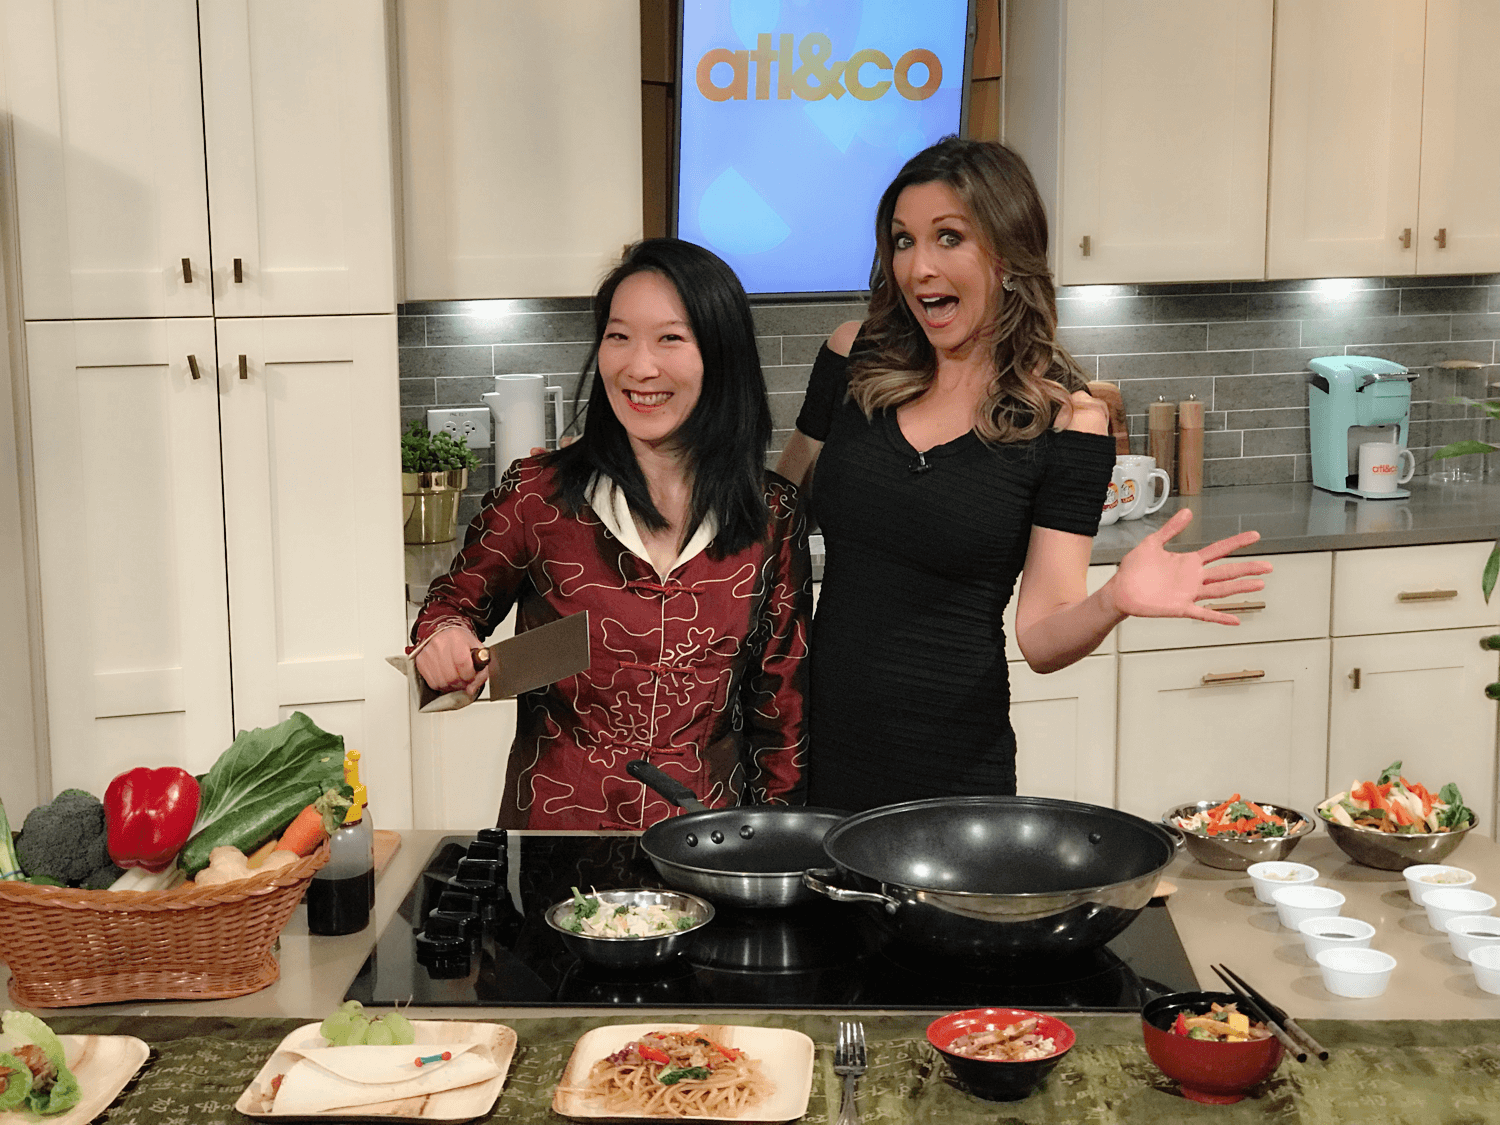 Easy Asian Home Cooking with Natalie: 1-Minute Stir Fry on TV